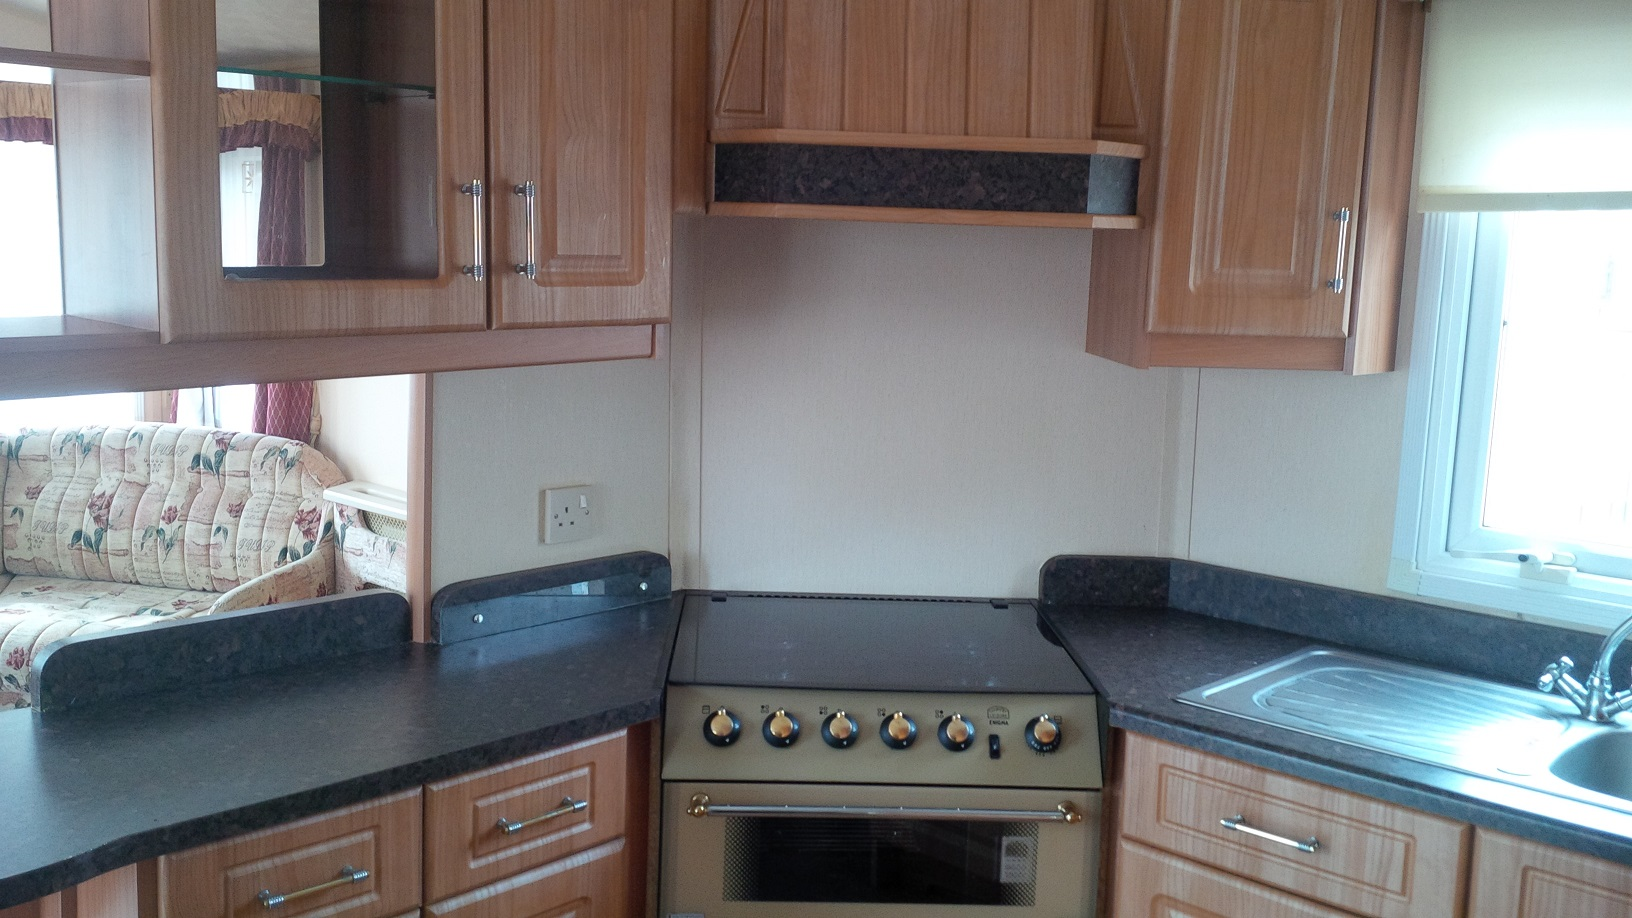 Willerby Granada: Static Caravans for Temporary Accommodation, Langley Moor, Durham Image 2